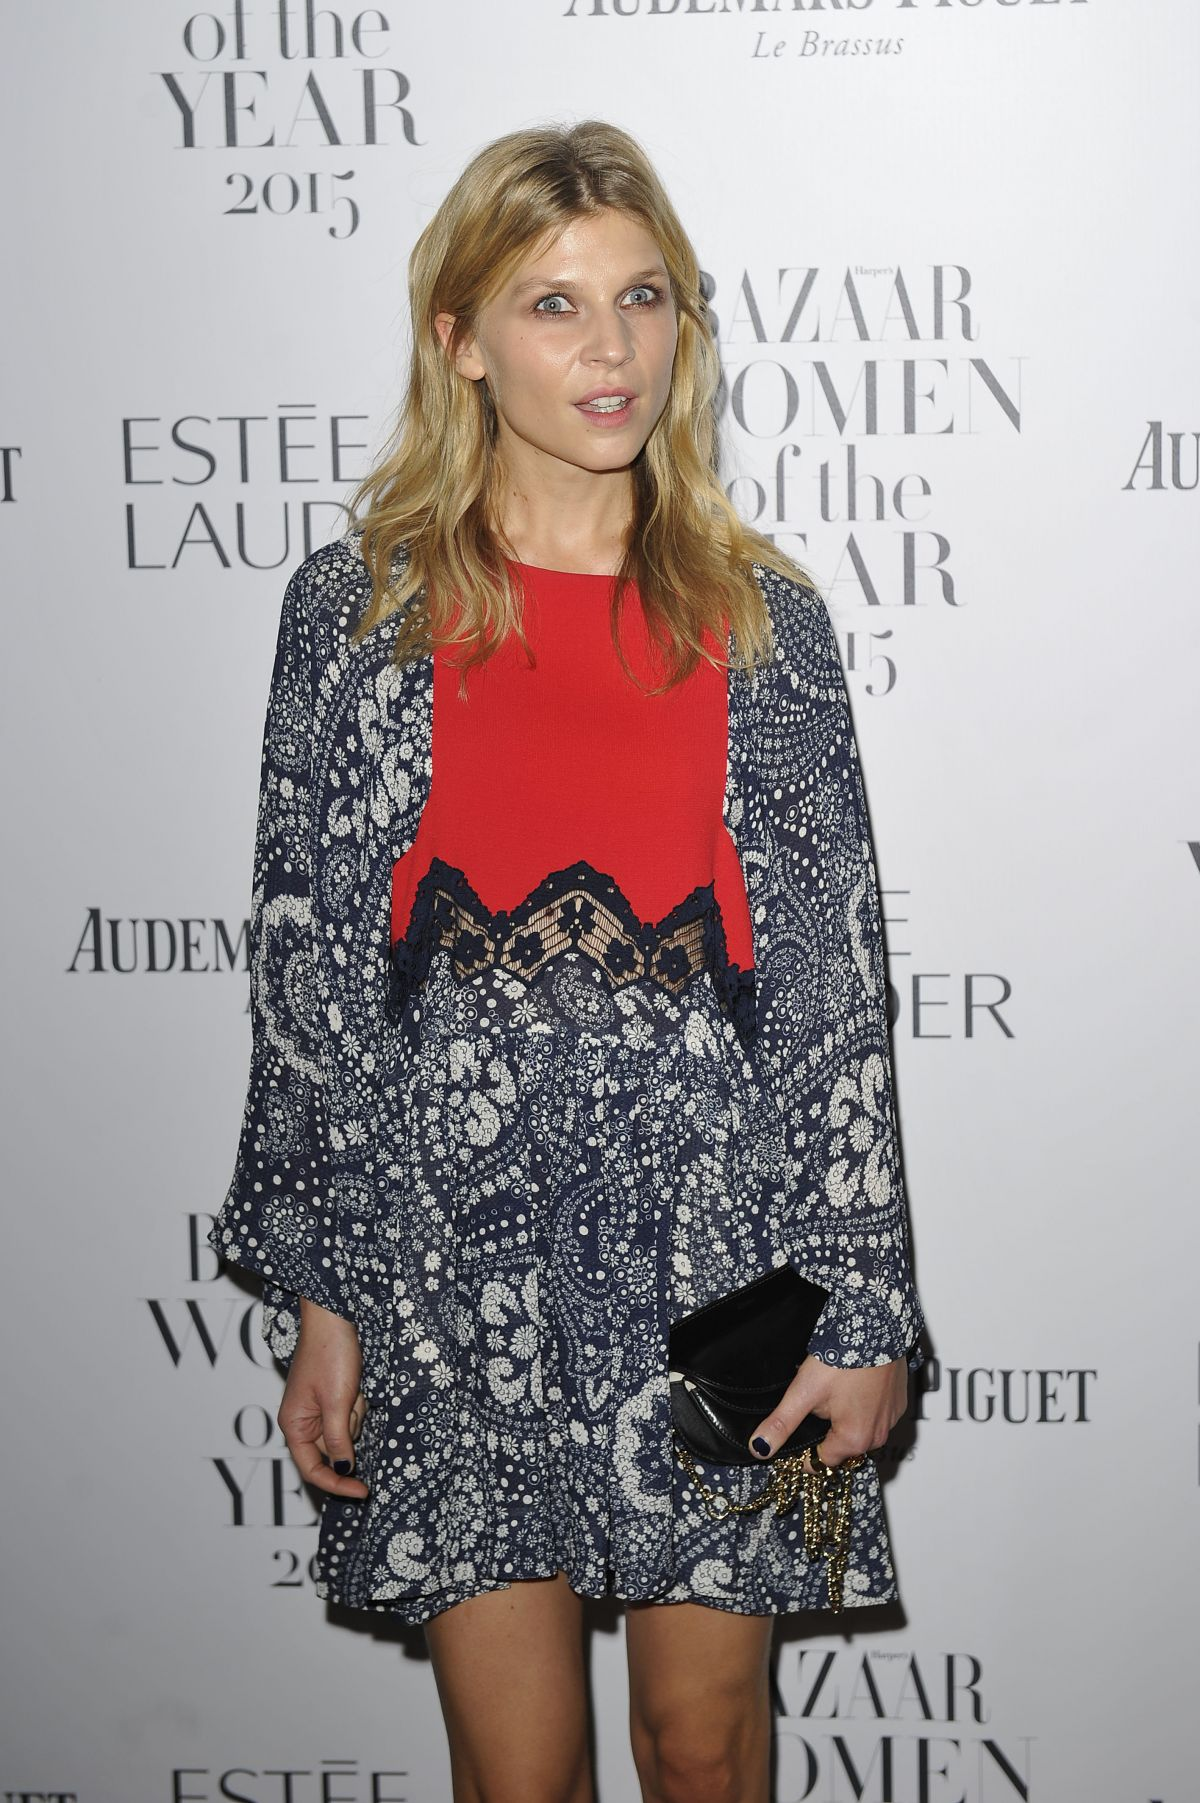 CLEMENCE POESY at Harper